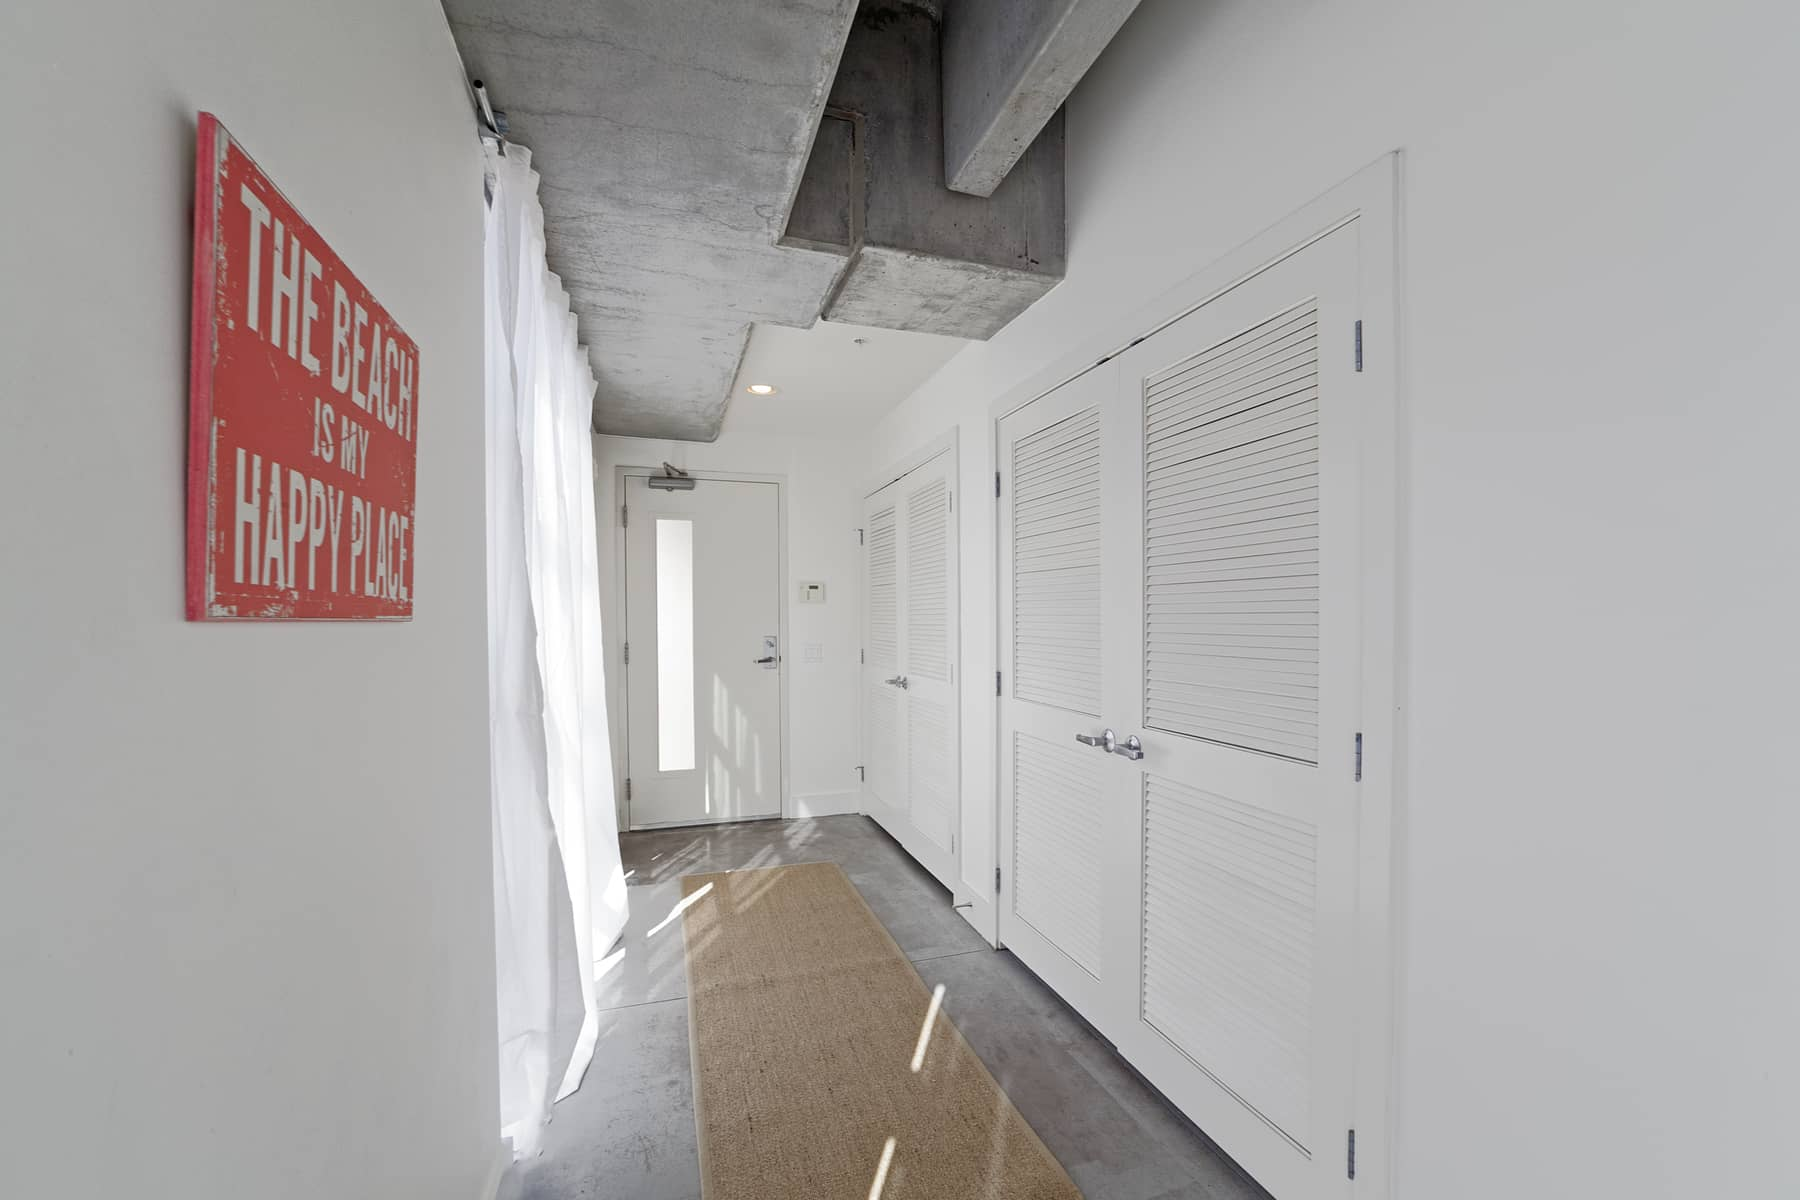 The long entry has a wall of windows along one side, and, along the other, a large coat/utility closet as well as a washer/dryer area.